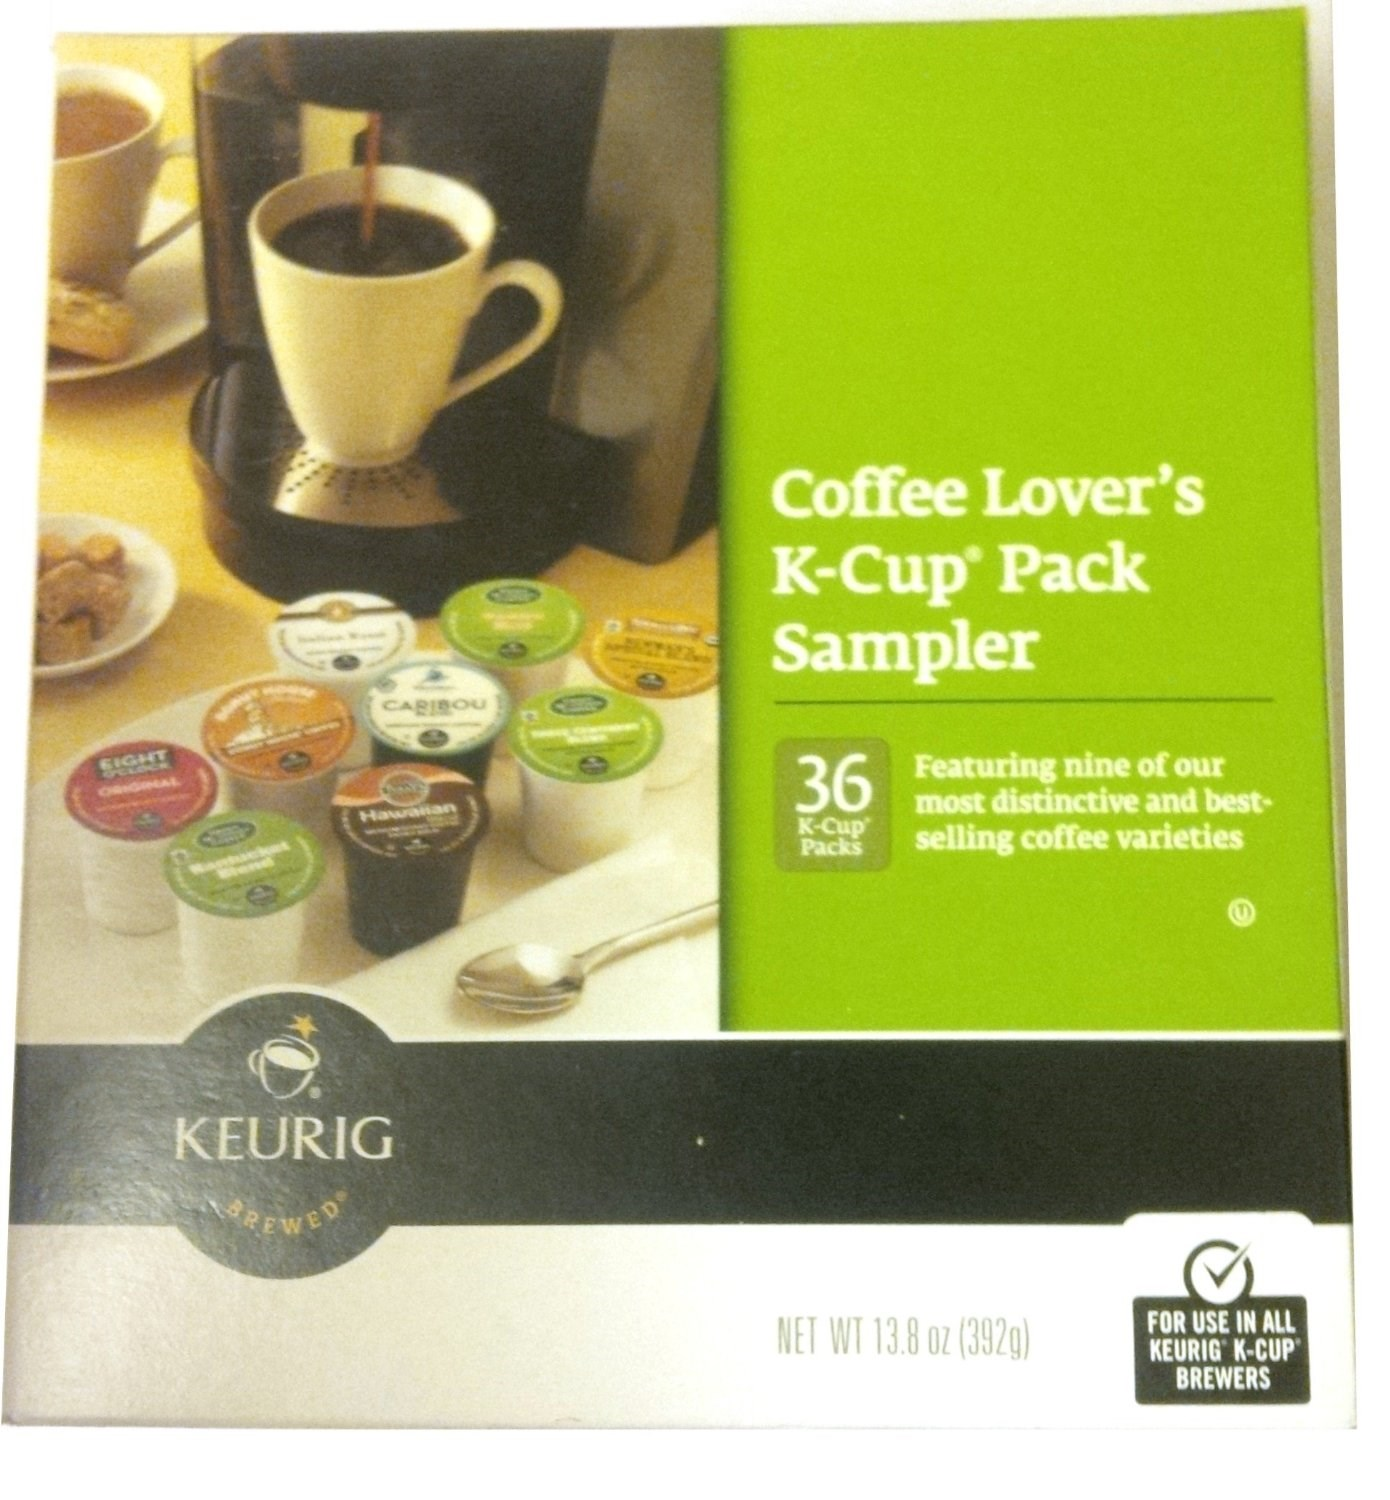 Green Mountain Roasters Gourmet Single Cup Coffee Coffee Lover's KCup Sampler, 13.8 OZ (Pack of 4)